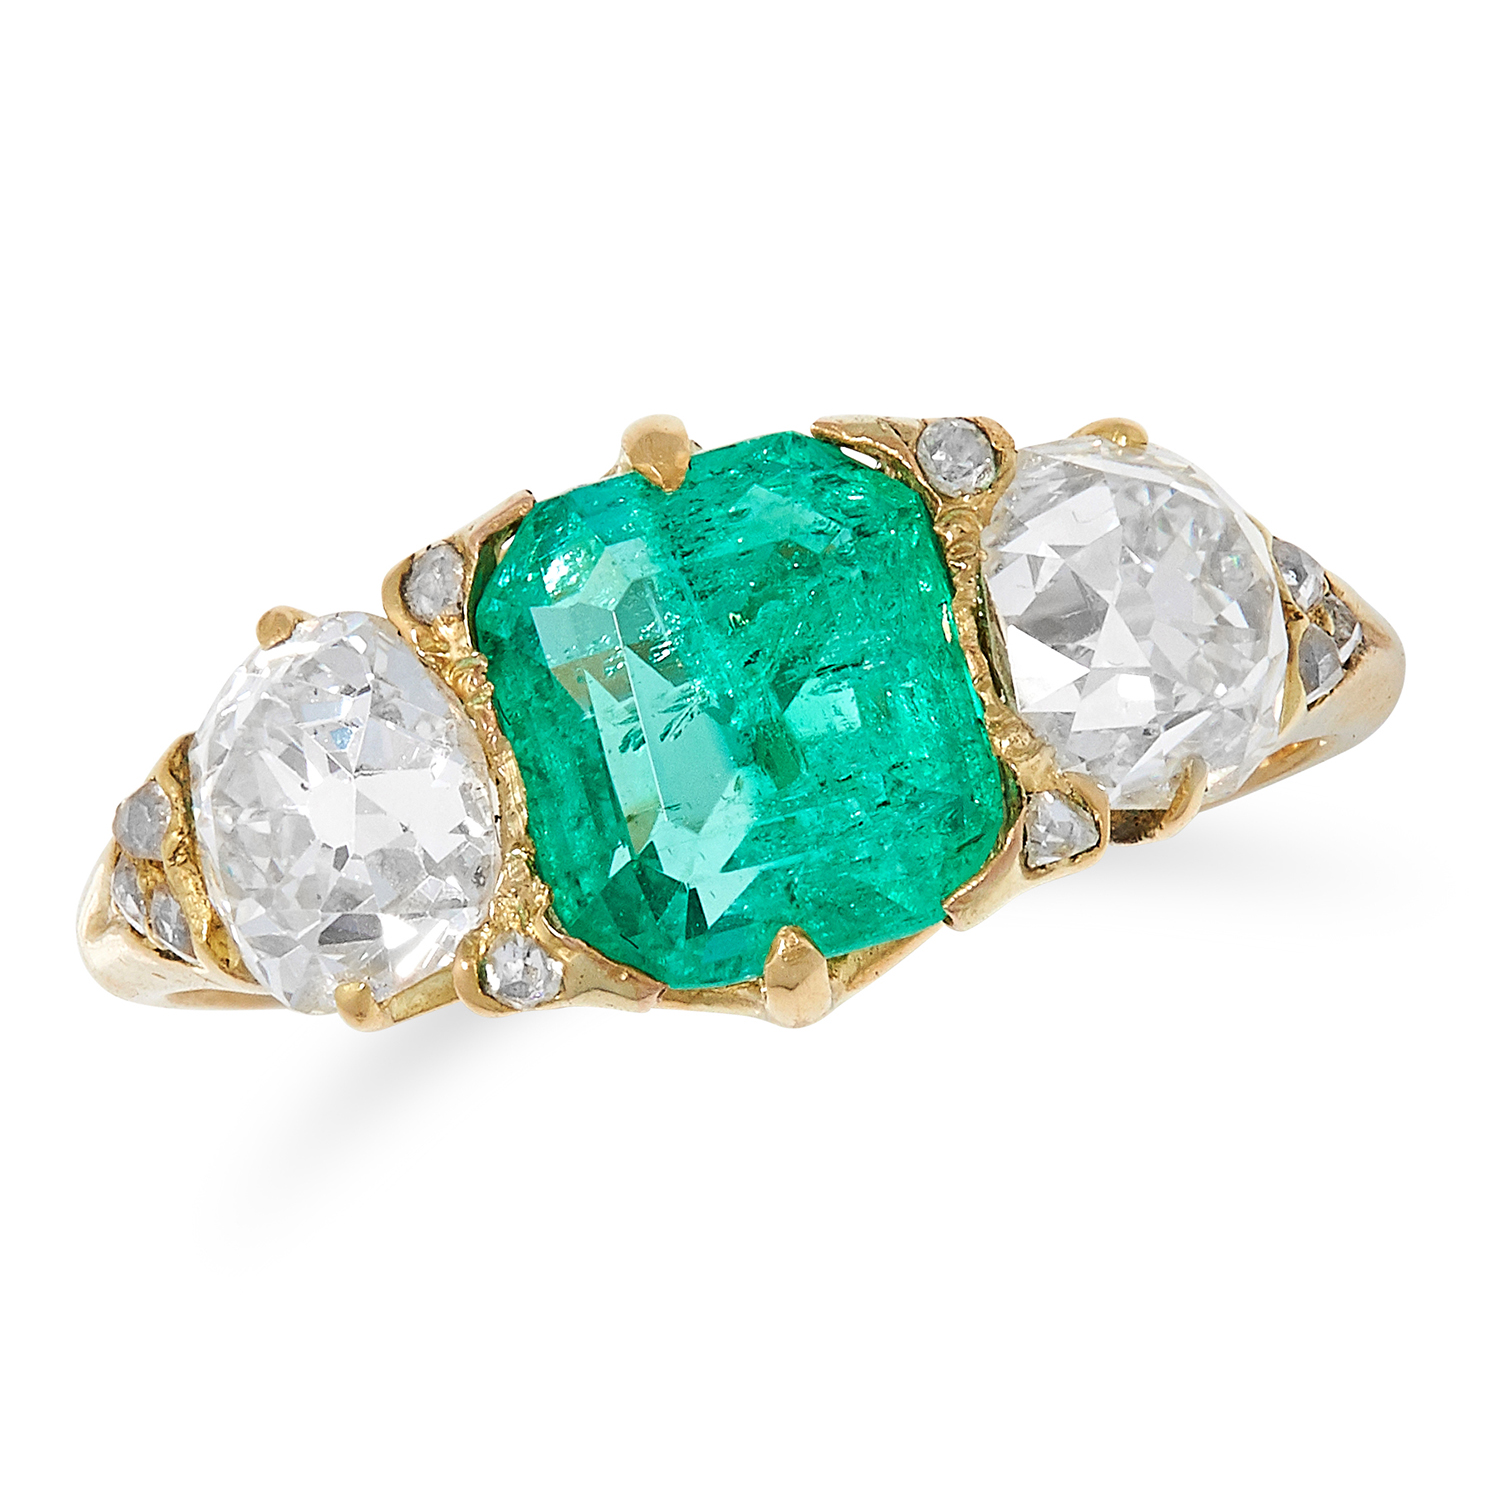 1.71 CARAT COLOMBIAN EMERALD AND DIAMOND THREE STONE RING set with an emerald cut emerald of 2.72